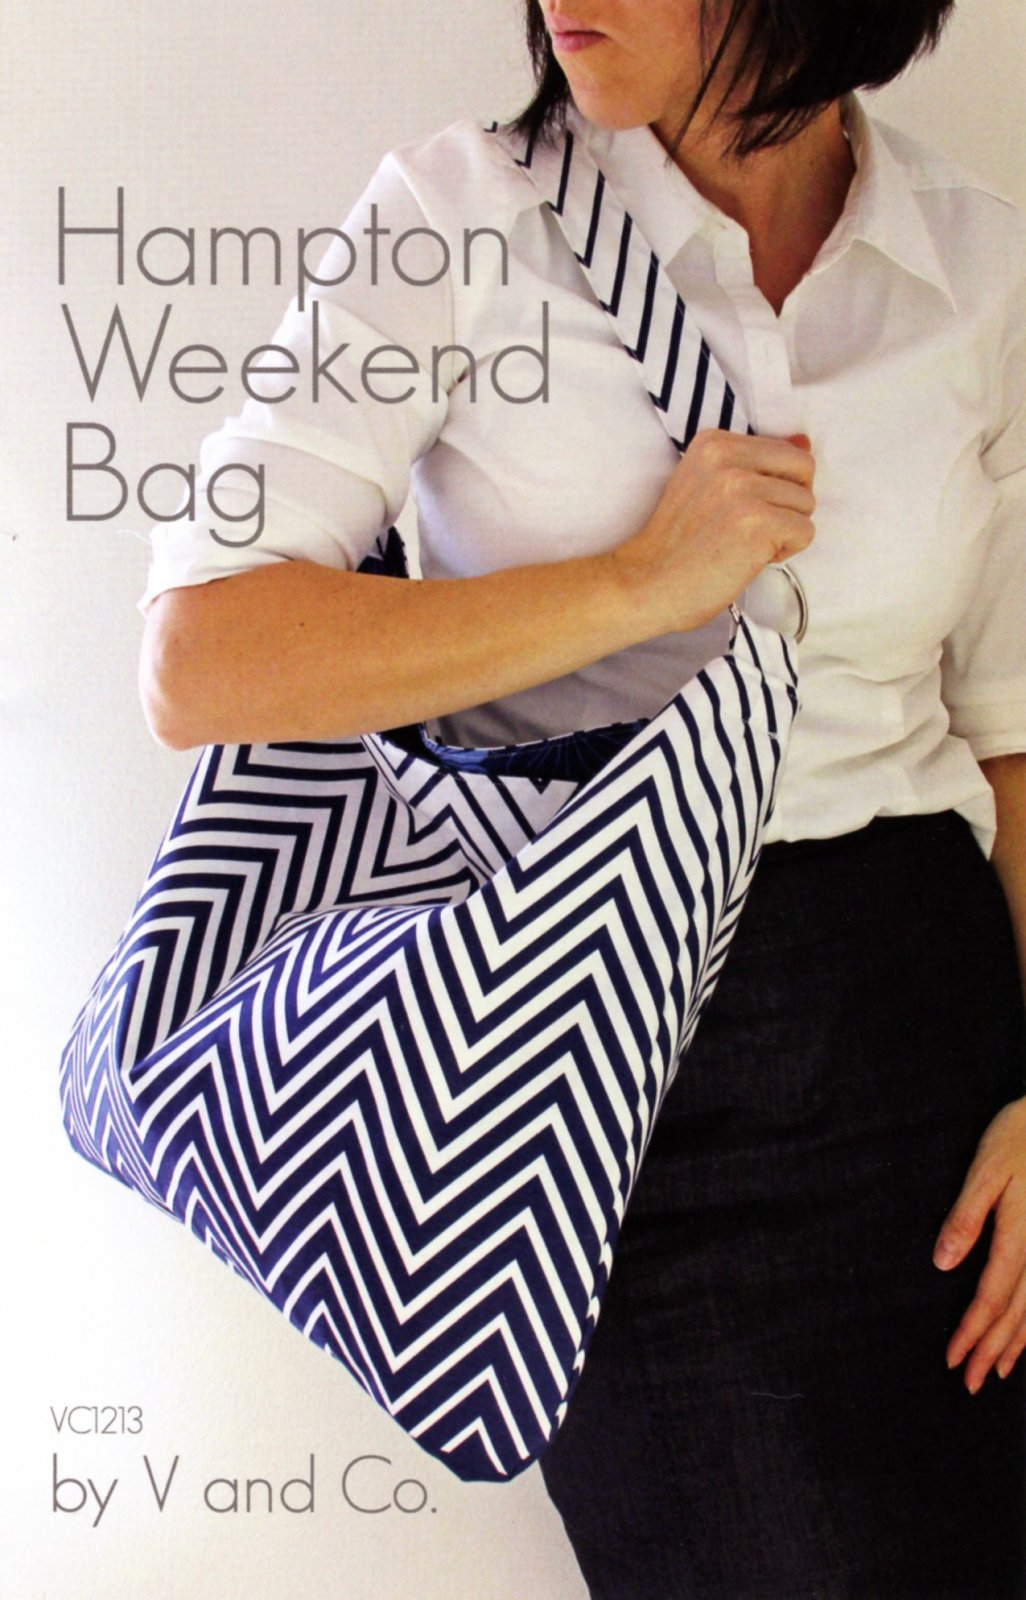 Hampton Weekend Bag